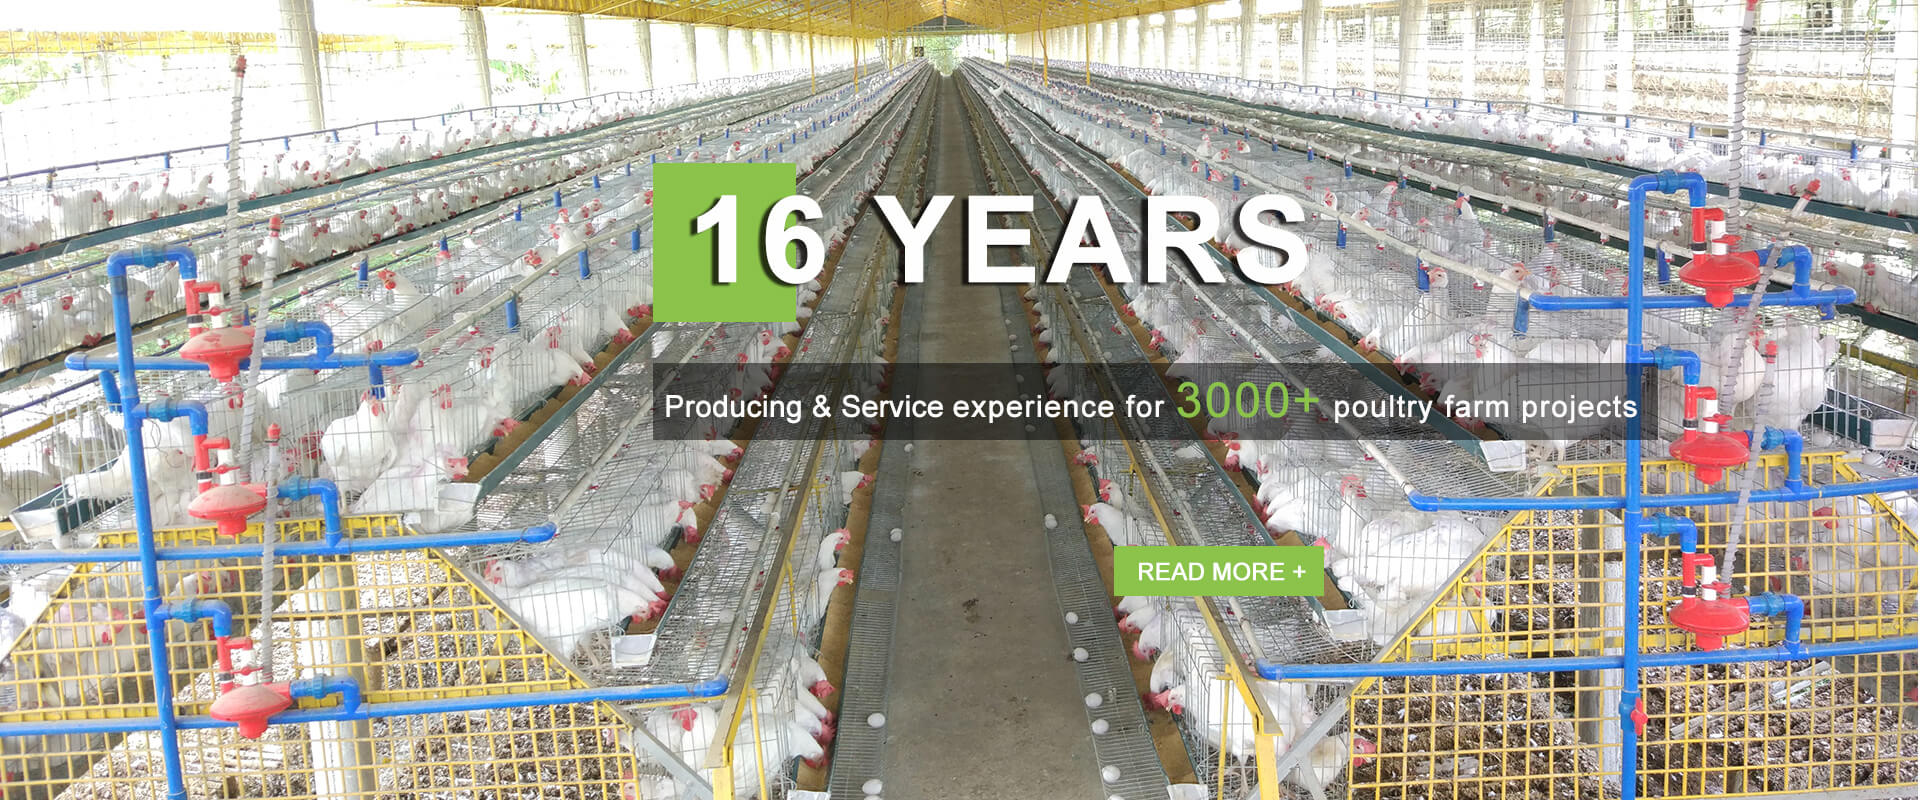 Hightop Poultry Equipment Main Image